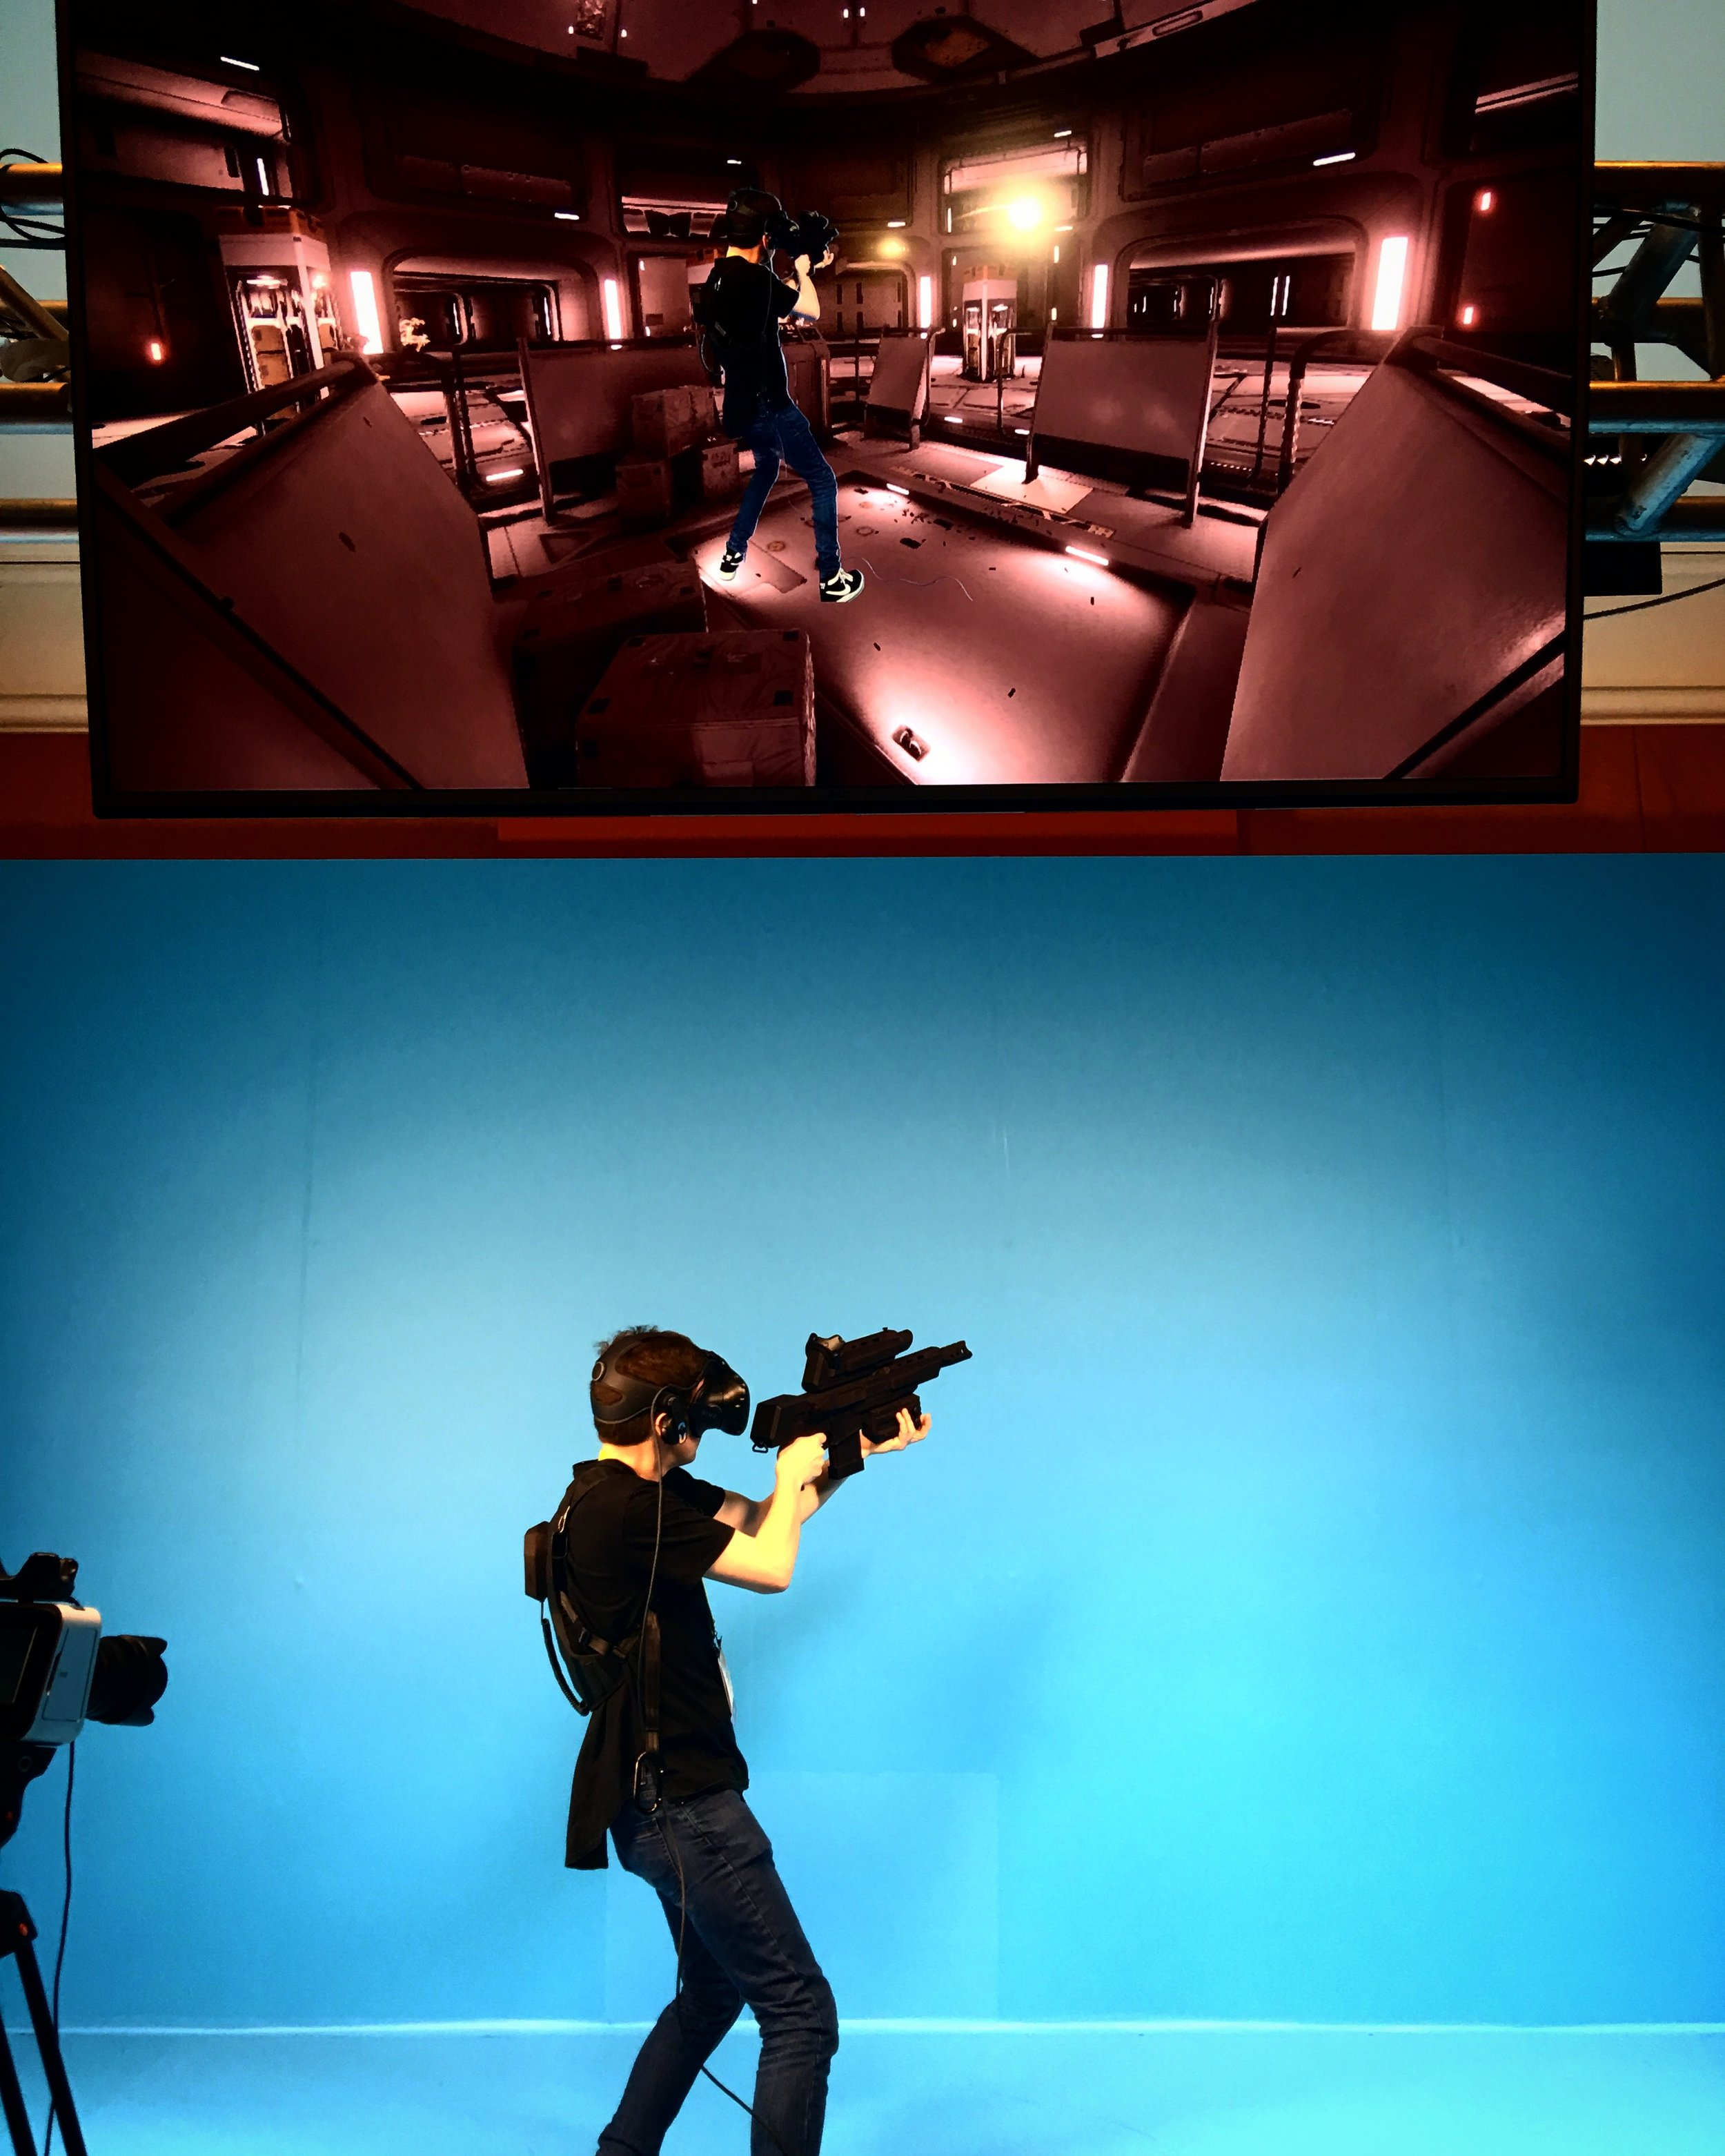 Me, unleashing my inner nerd on the VR shooting demo at CES 2017.